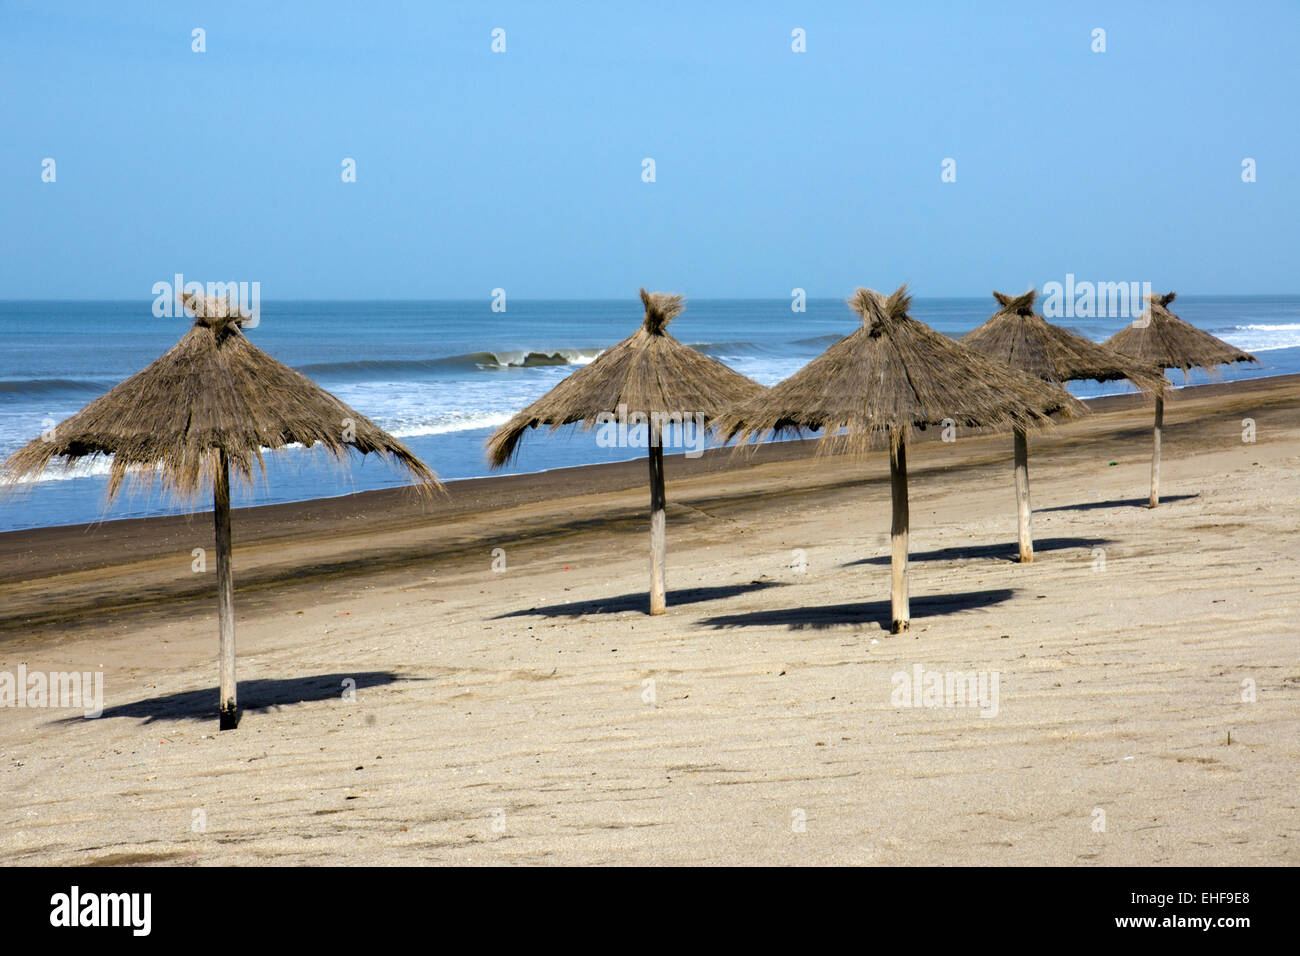 Sunshades at an empty beach - Stock Image